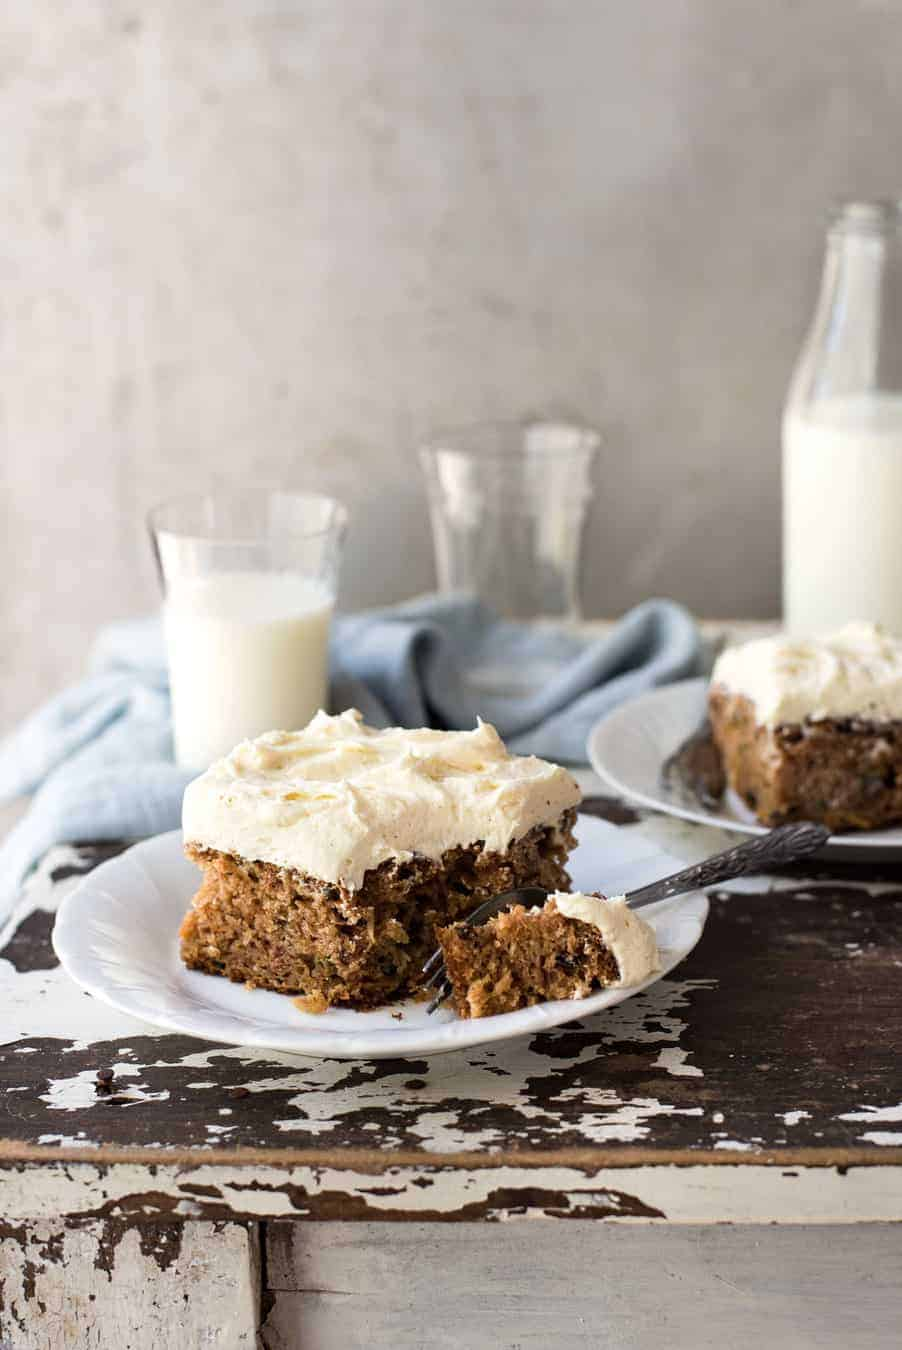 Dorothy's Carrot Cake - Moist, dense, not to sweet, with plenty of light and fluffy cream cheese frosting. Super easy!